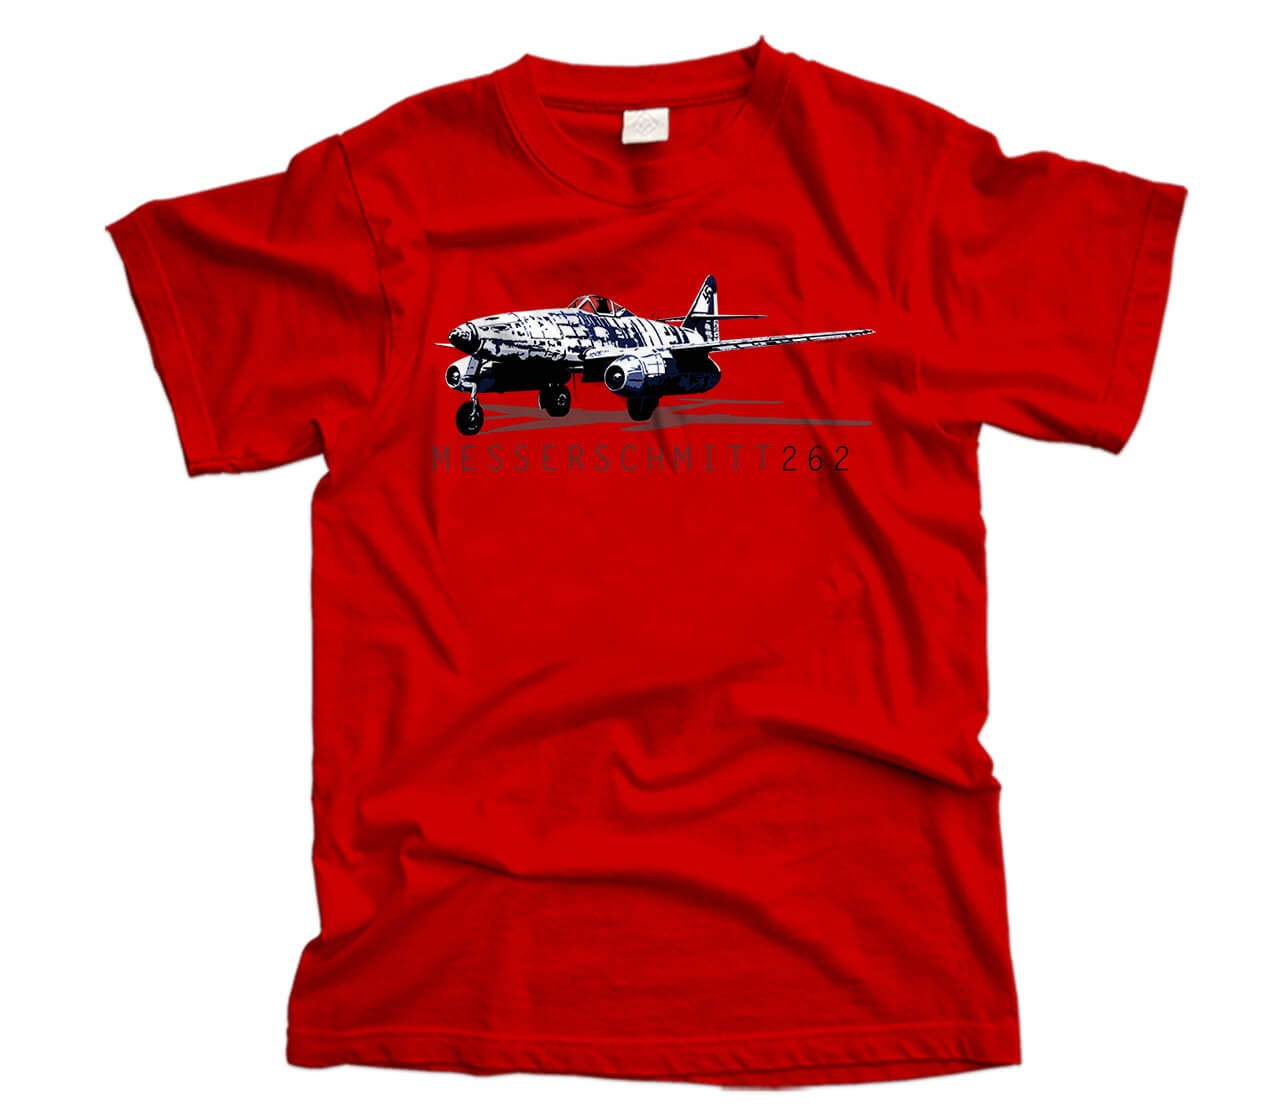 Messerschmitt Me 262 Aircraft T-Shirt